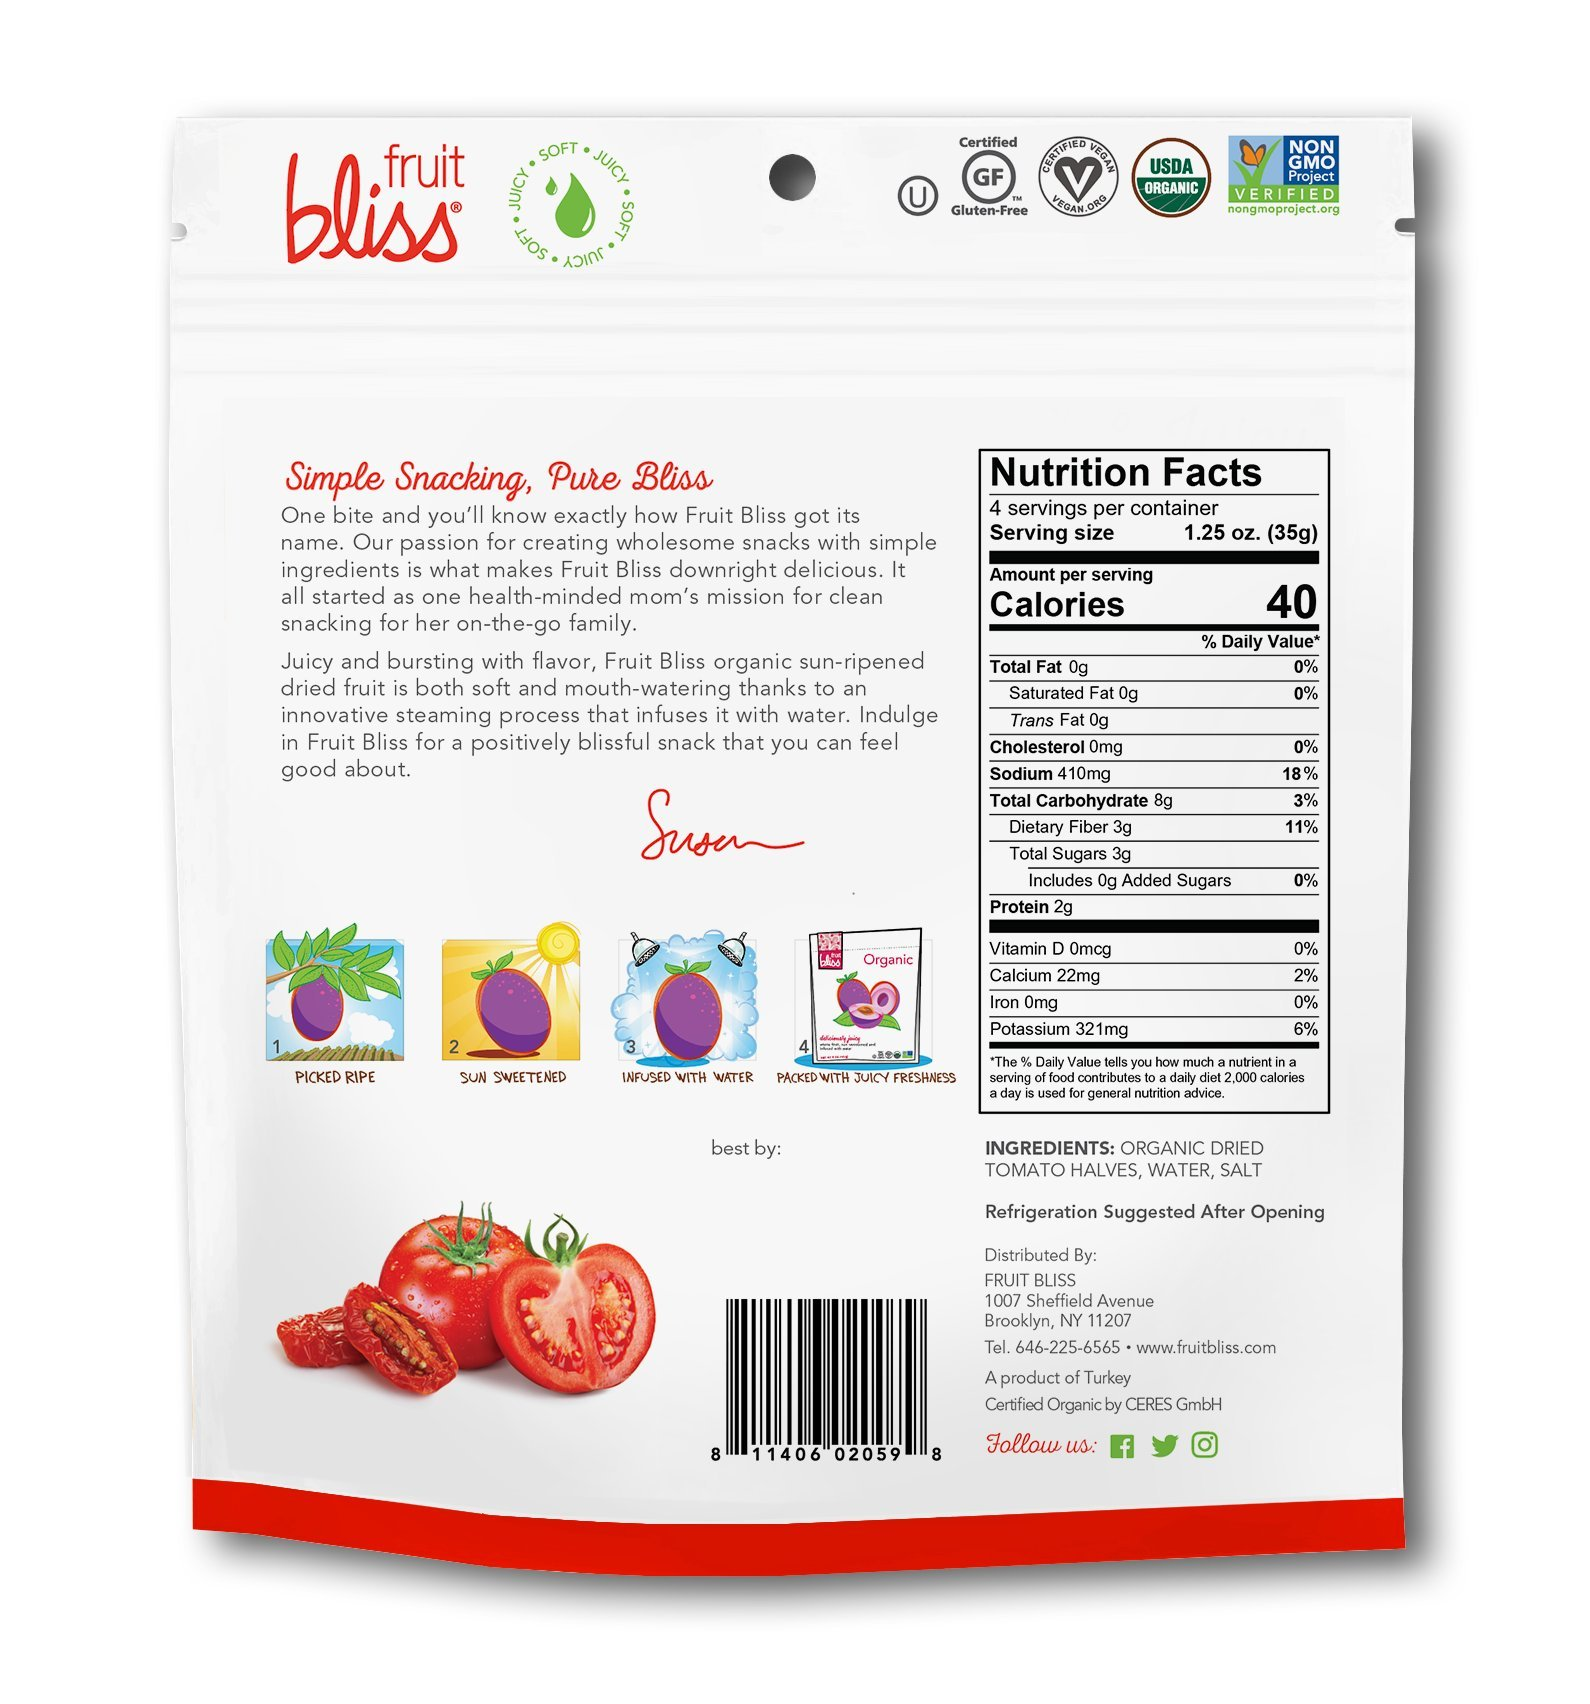 Fruit Bliss Organic Turkish Tomato Halves, 5 Oz - 3 Pack by Fruit Bliss (Image #1)